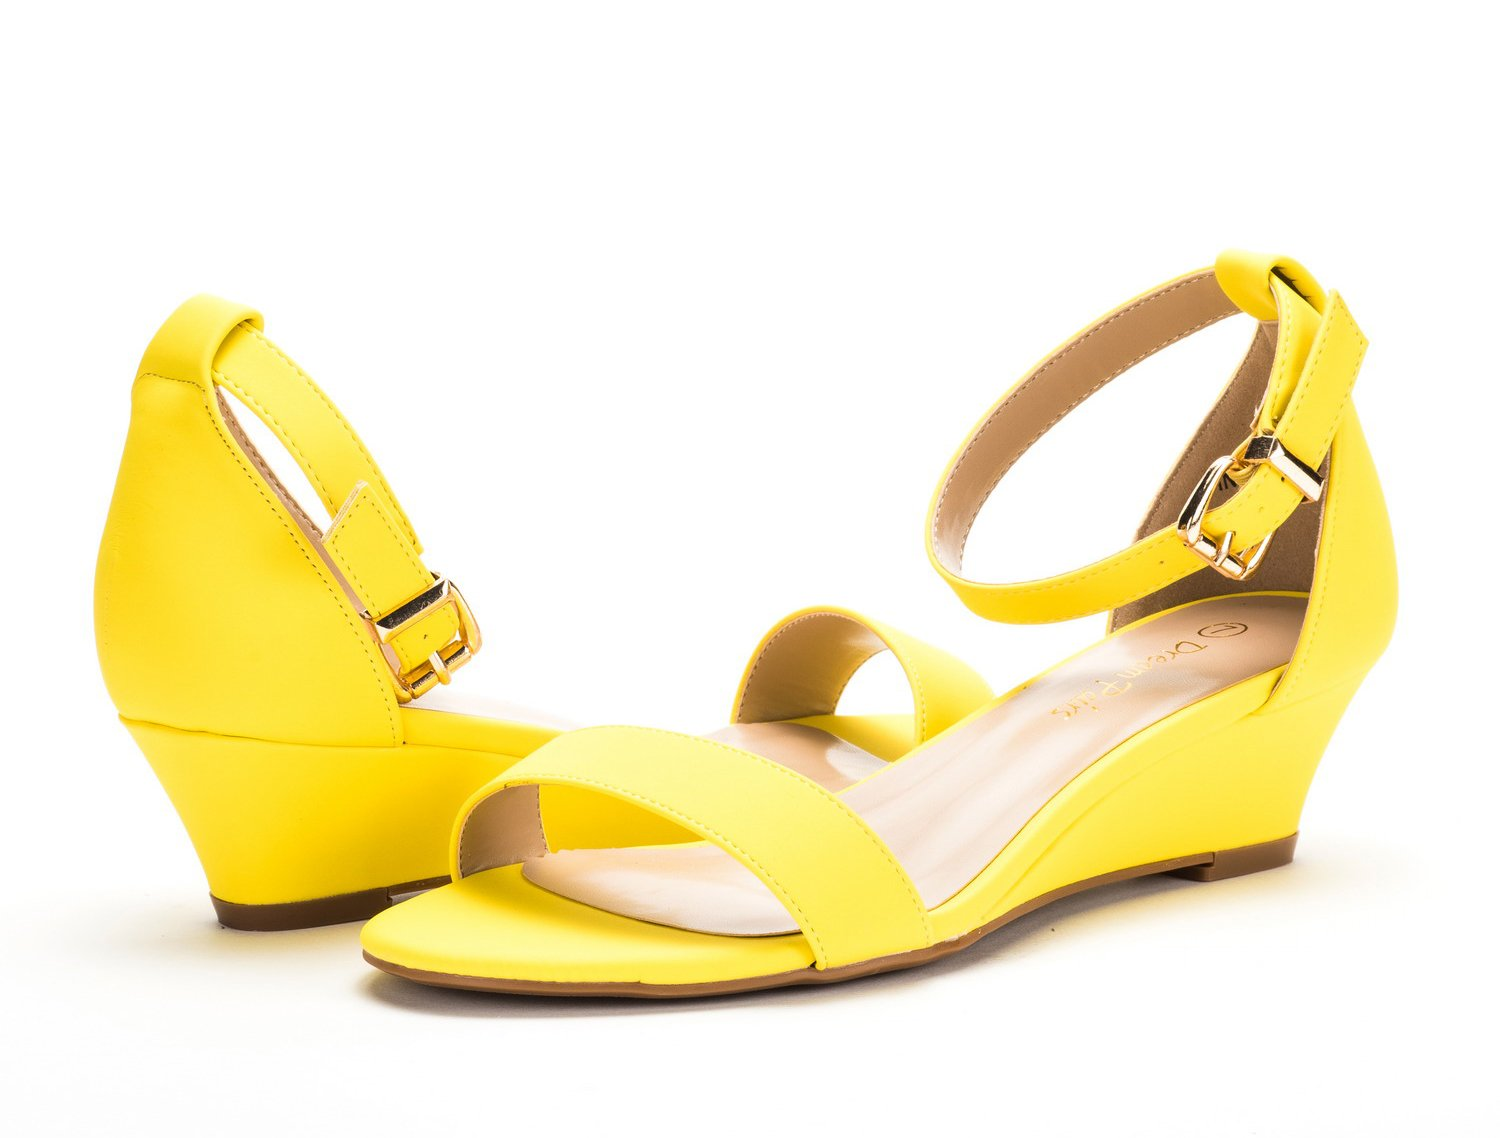 77f74b019d037 DREAM PAIRS Womens Ingrid Ankle Strap Low Wedge Sandals